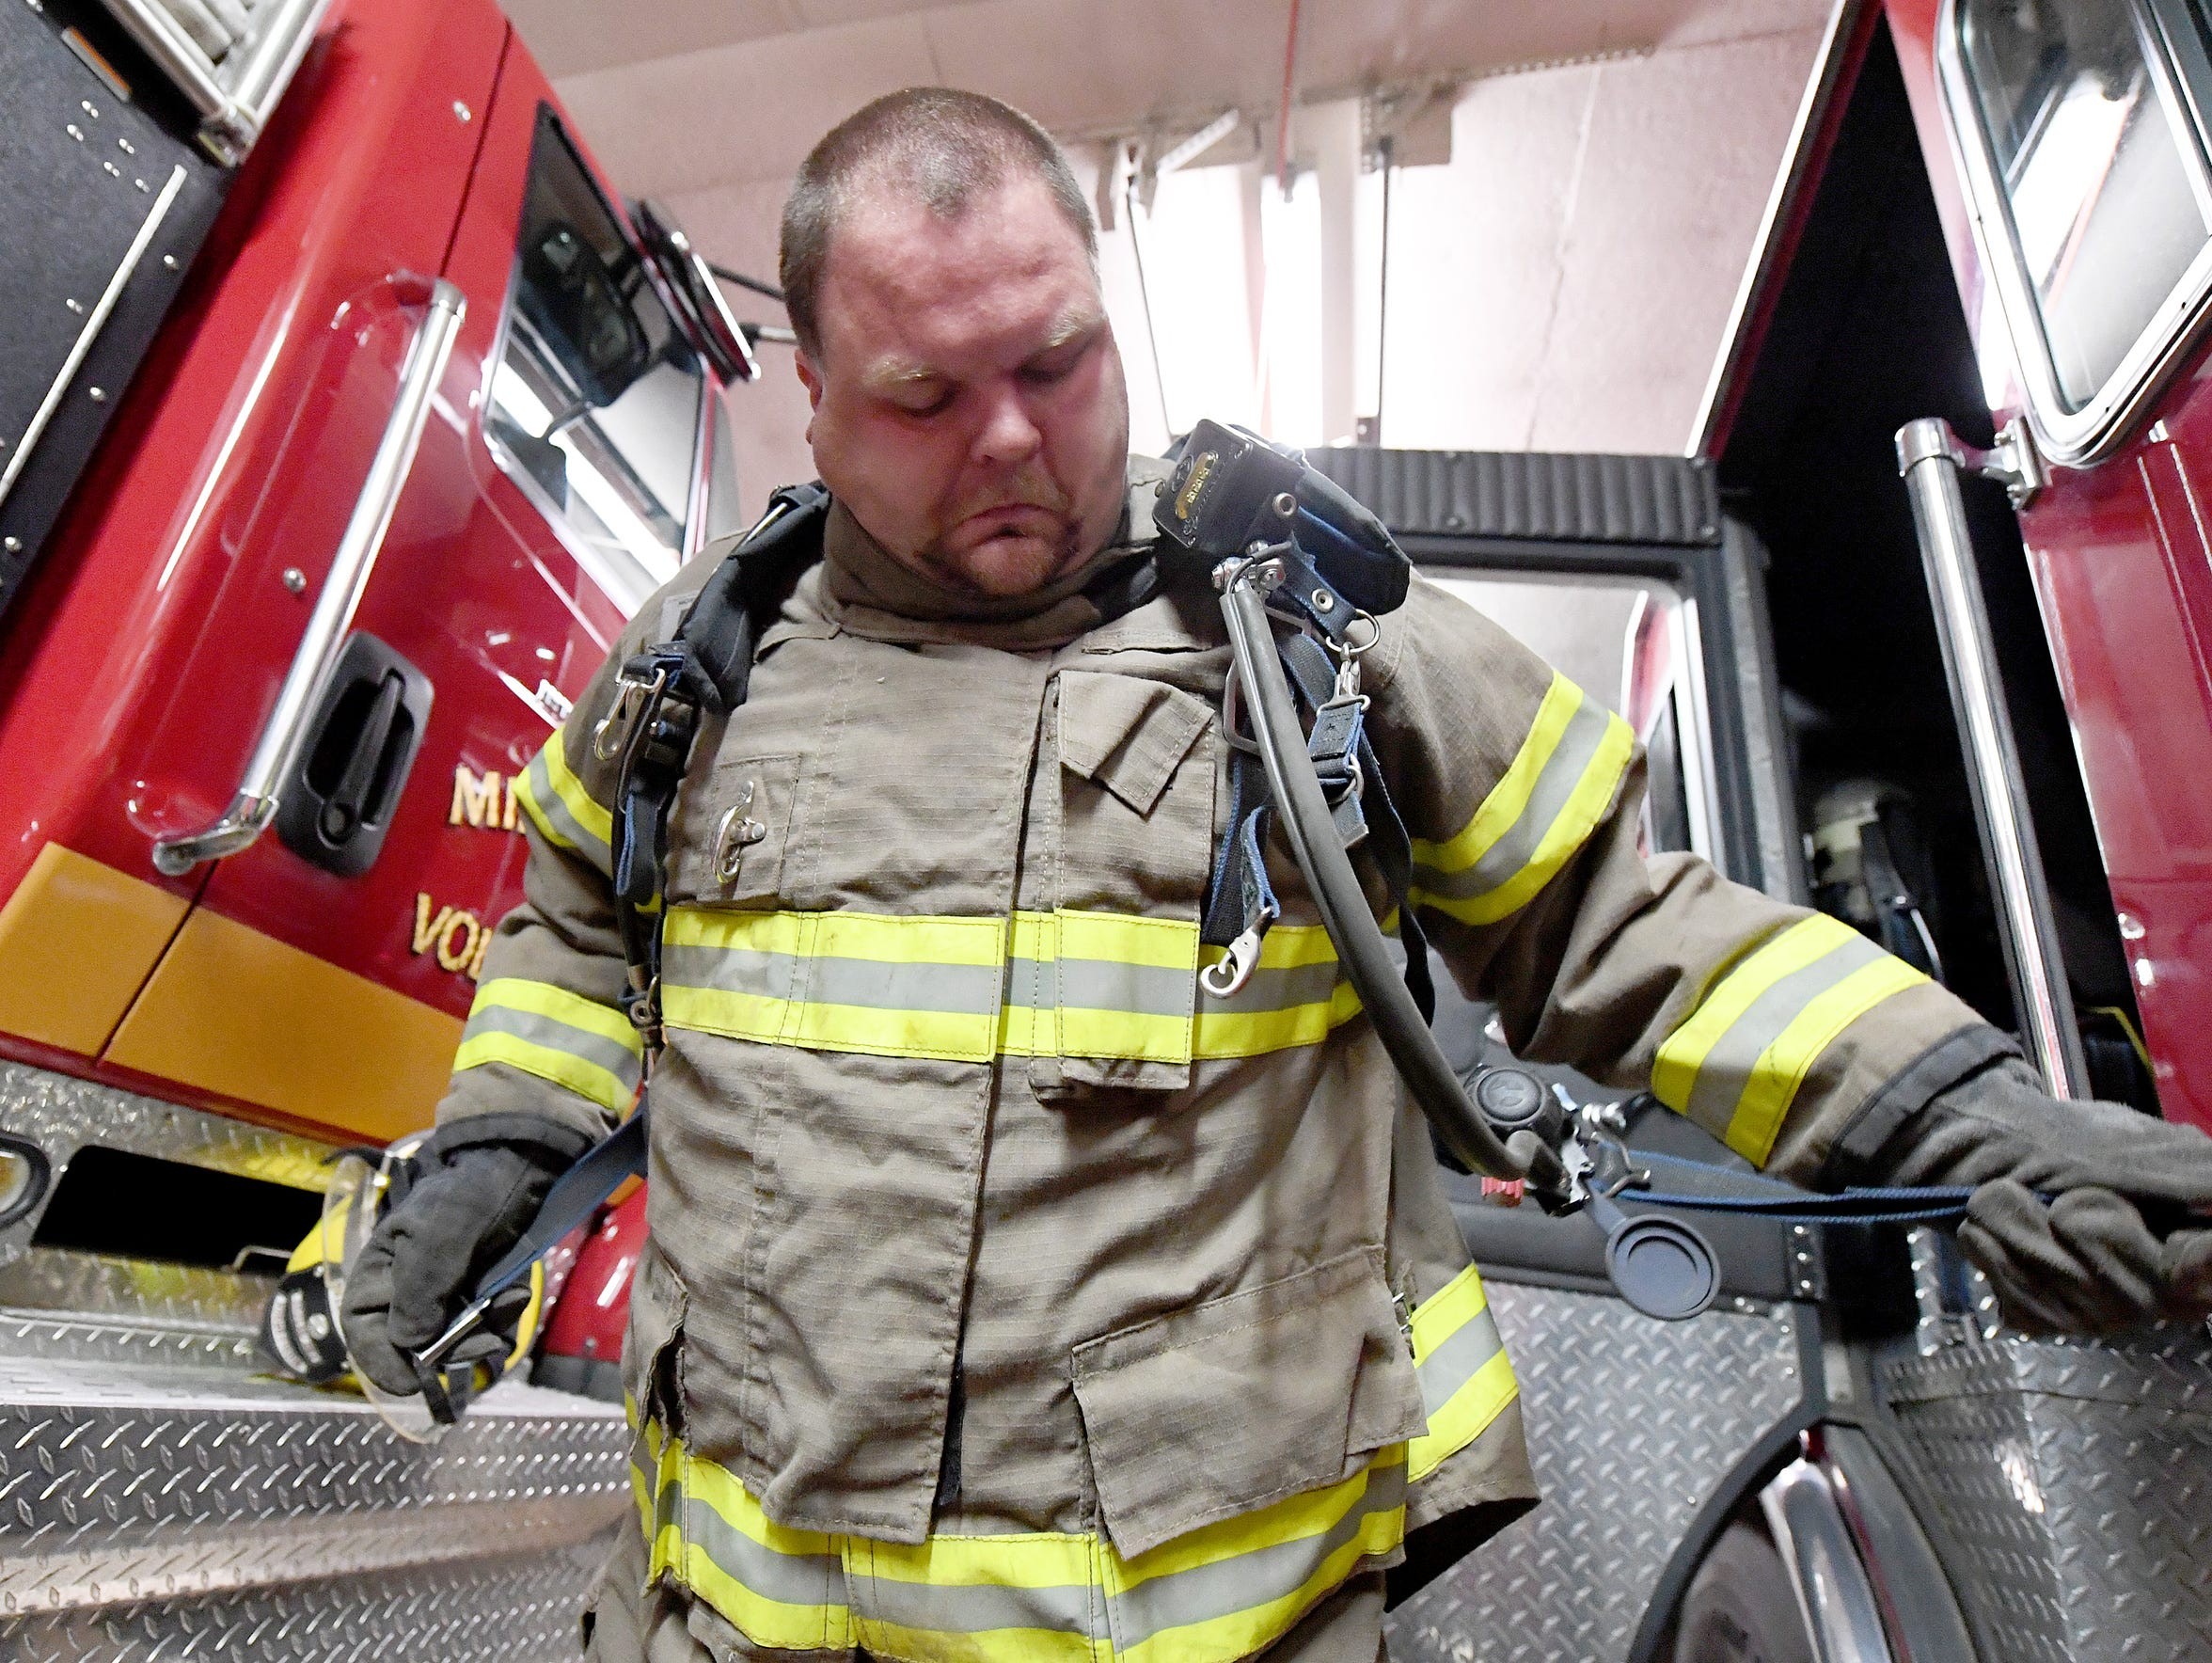 Middlebrook volunteer firefighter Frank Dull slips on an air pack as he talks about the various gear worn and used by firefighters during an interview at the firehouse.